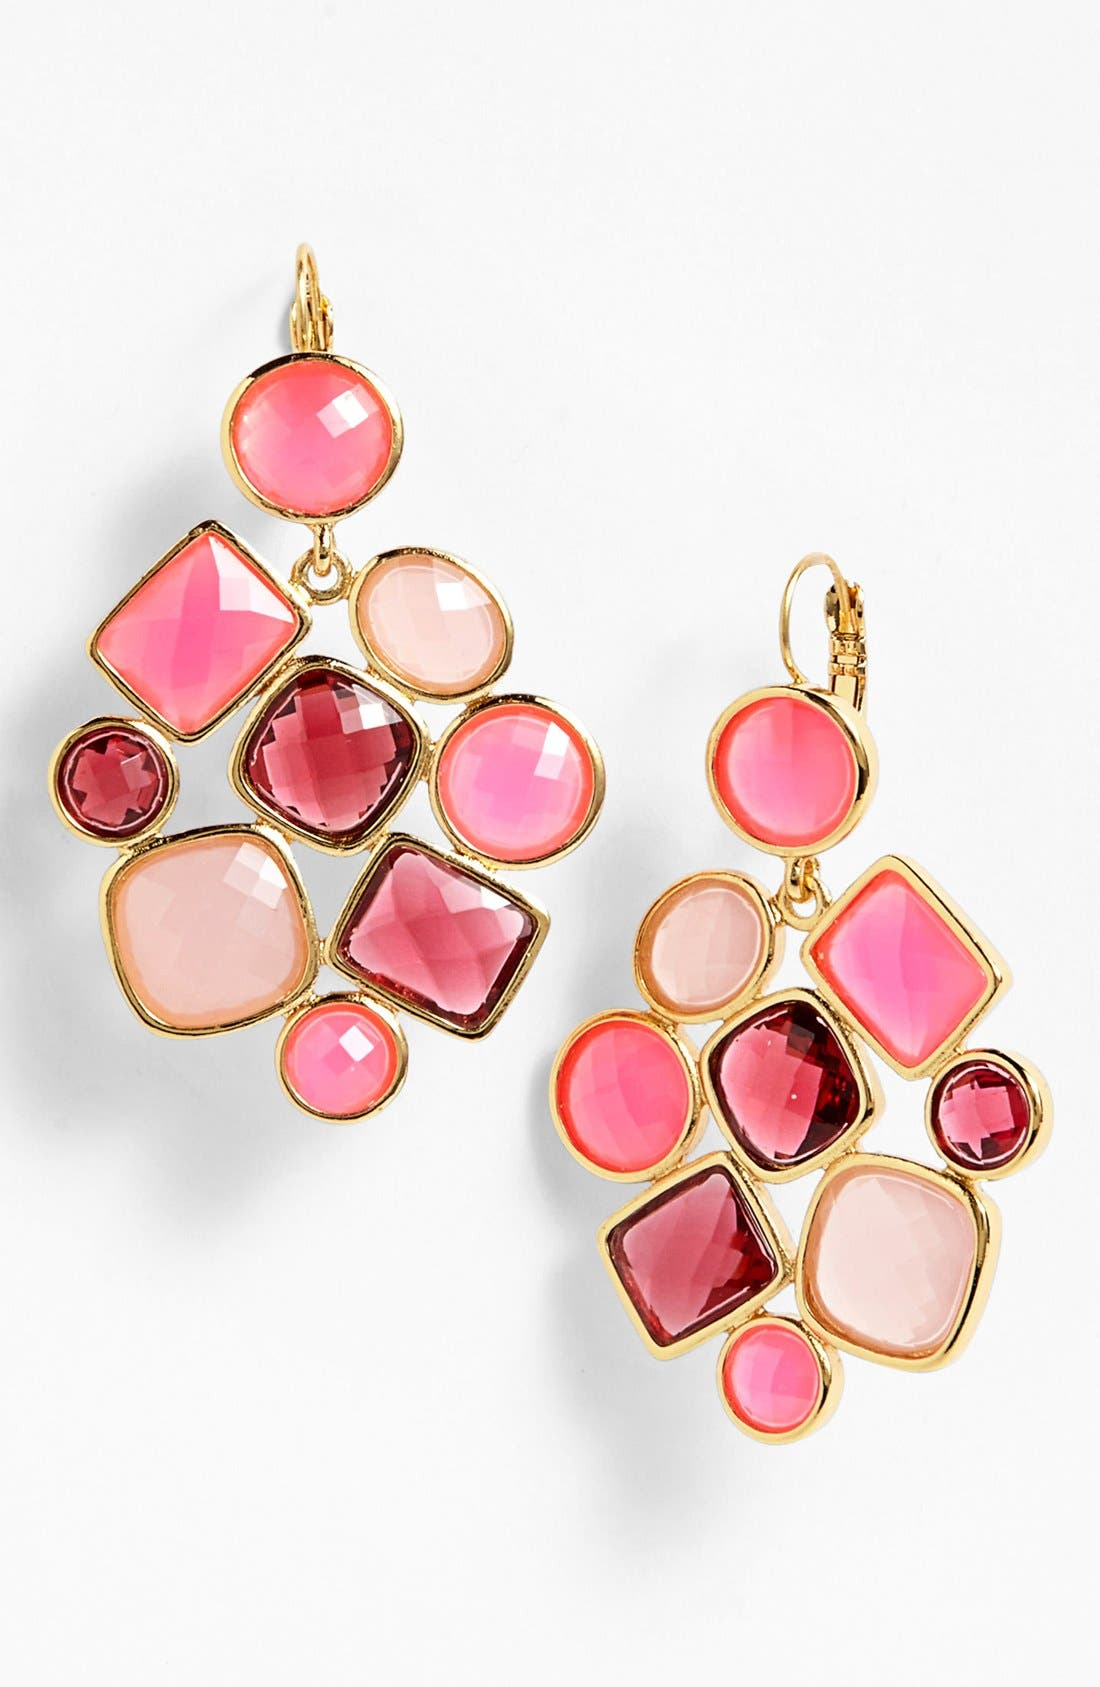 Alternate Image 1 Selected - kate spade new york 'microfacet' stone cluster chandelier earrings (Special Purchase)